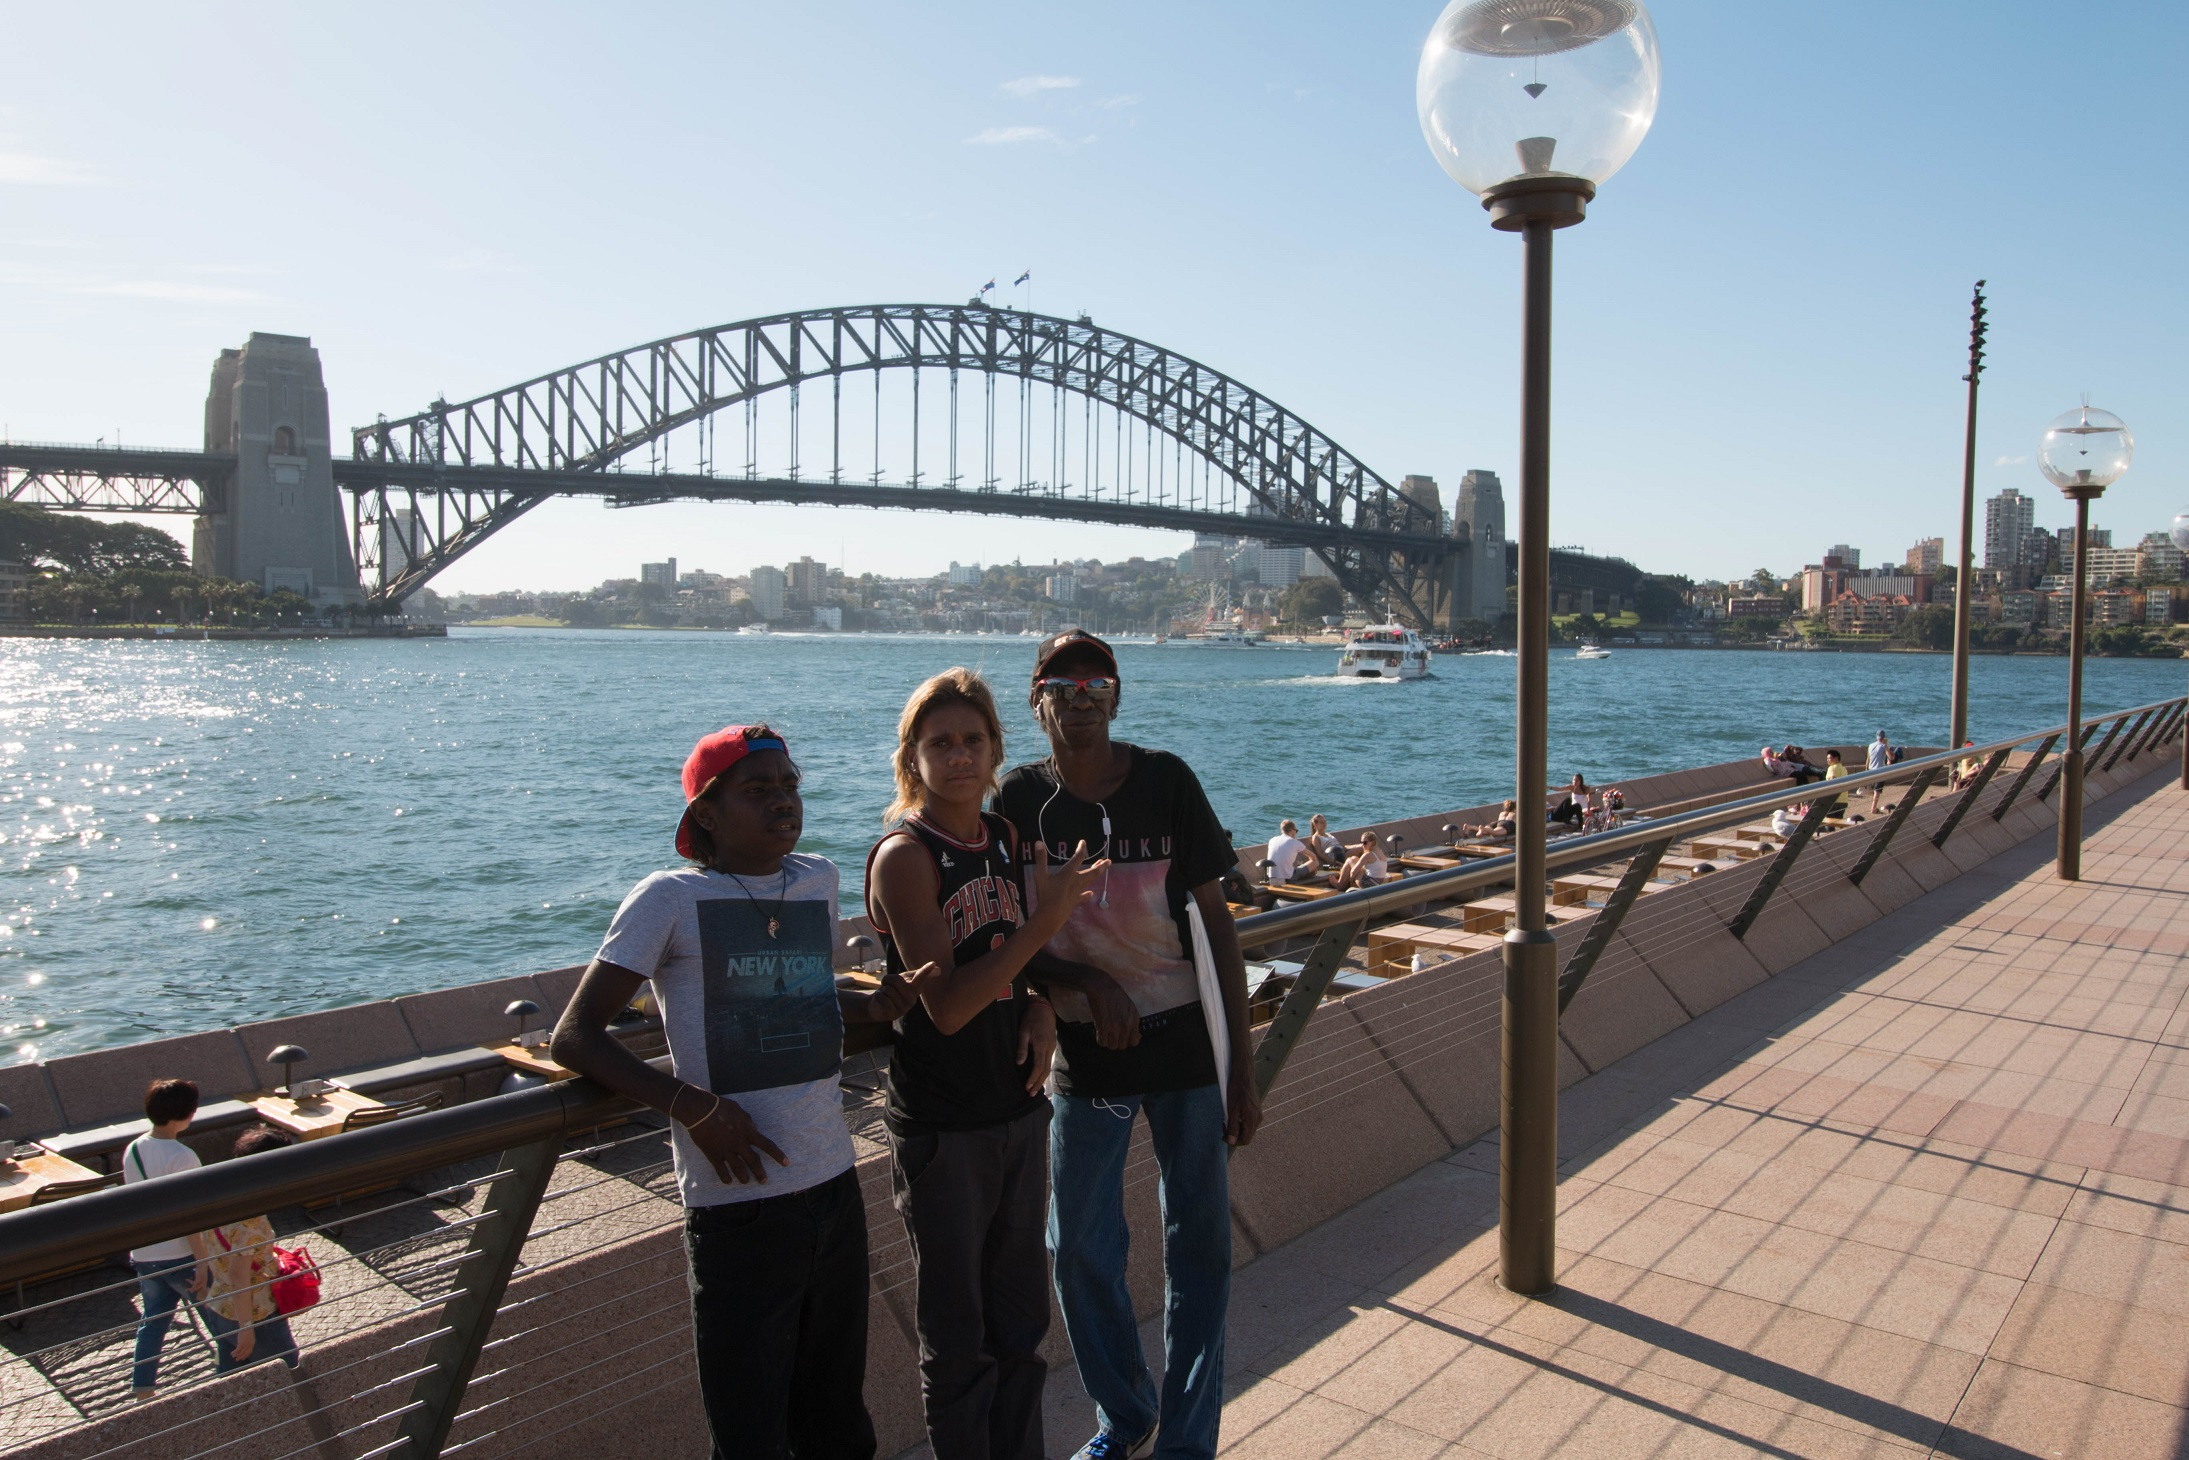 Lester Gumbula, Nehemiah Farrell and Kelvin Rogers at the Sydney Harbour Bridge